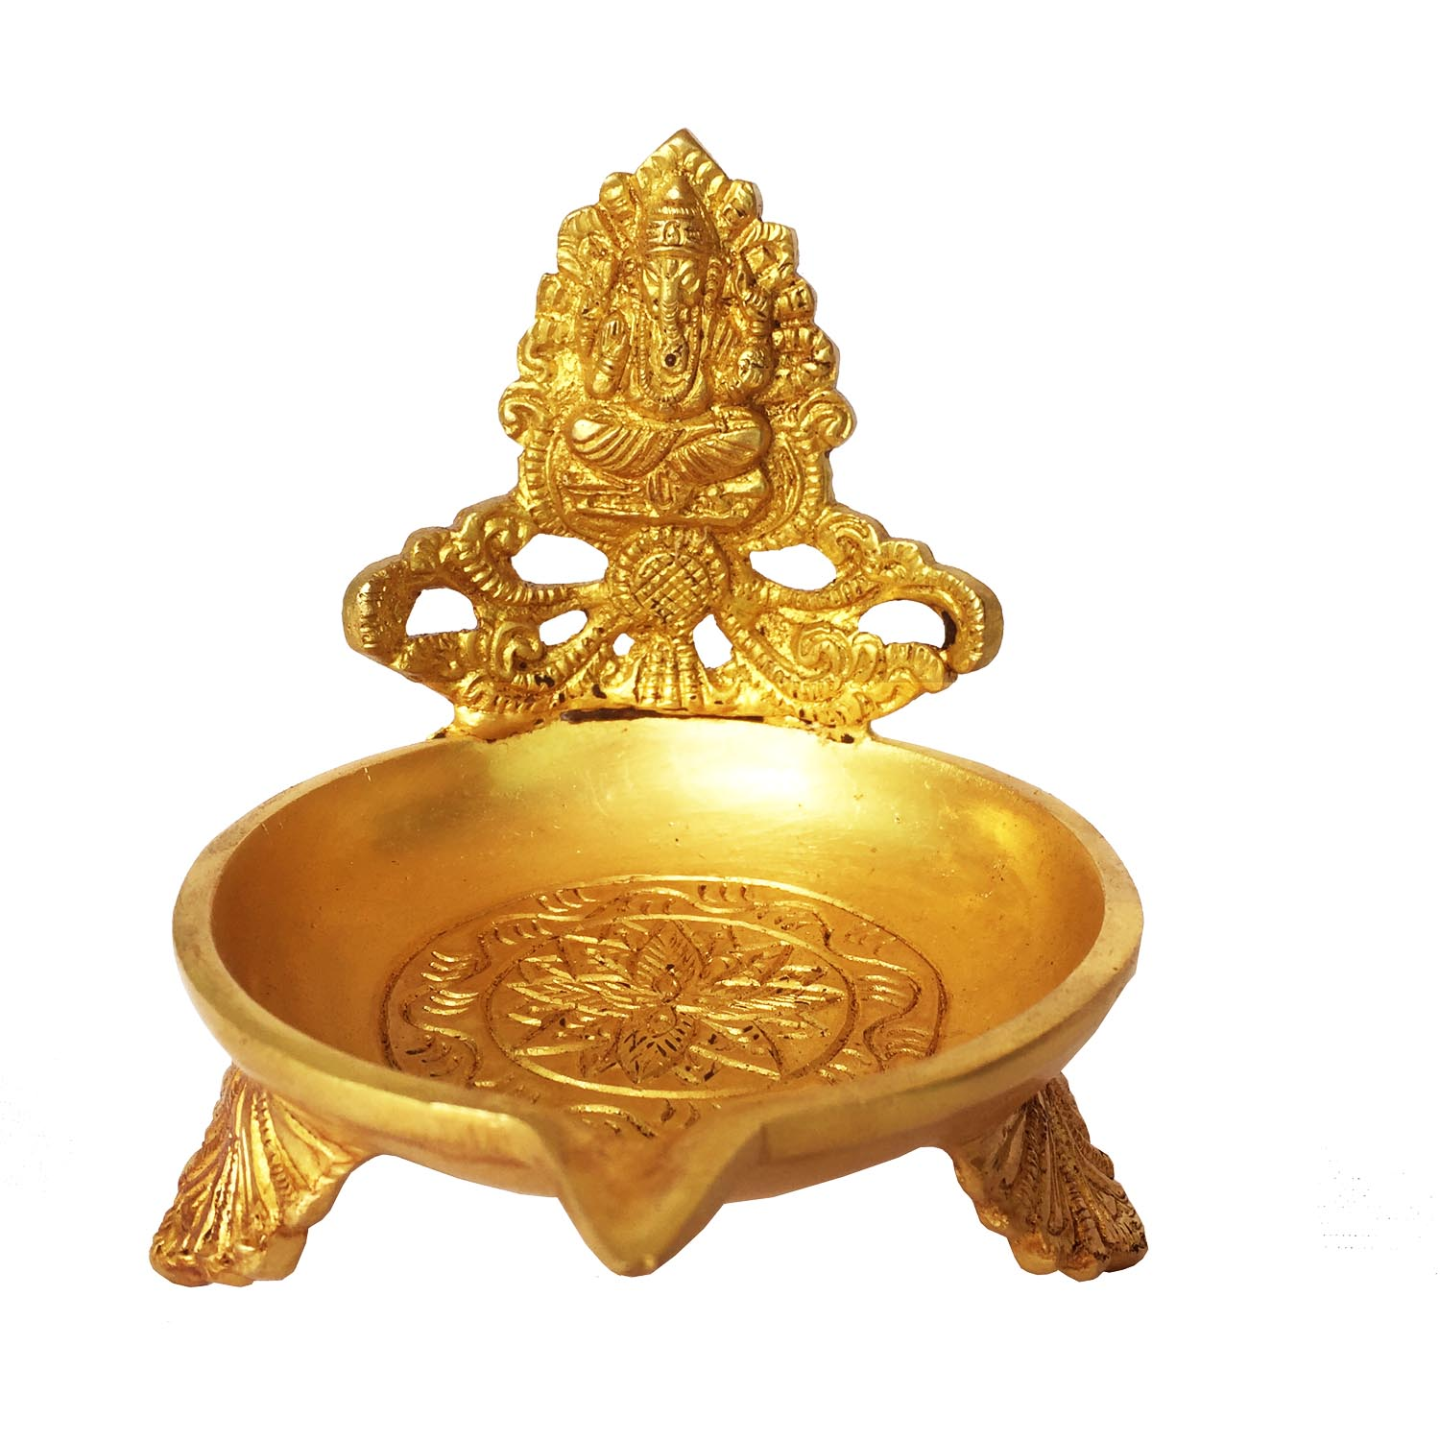 Brass Brass Table Diya - Metal Religious Temple worship deepak - (BS1160 G)